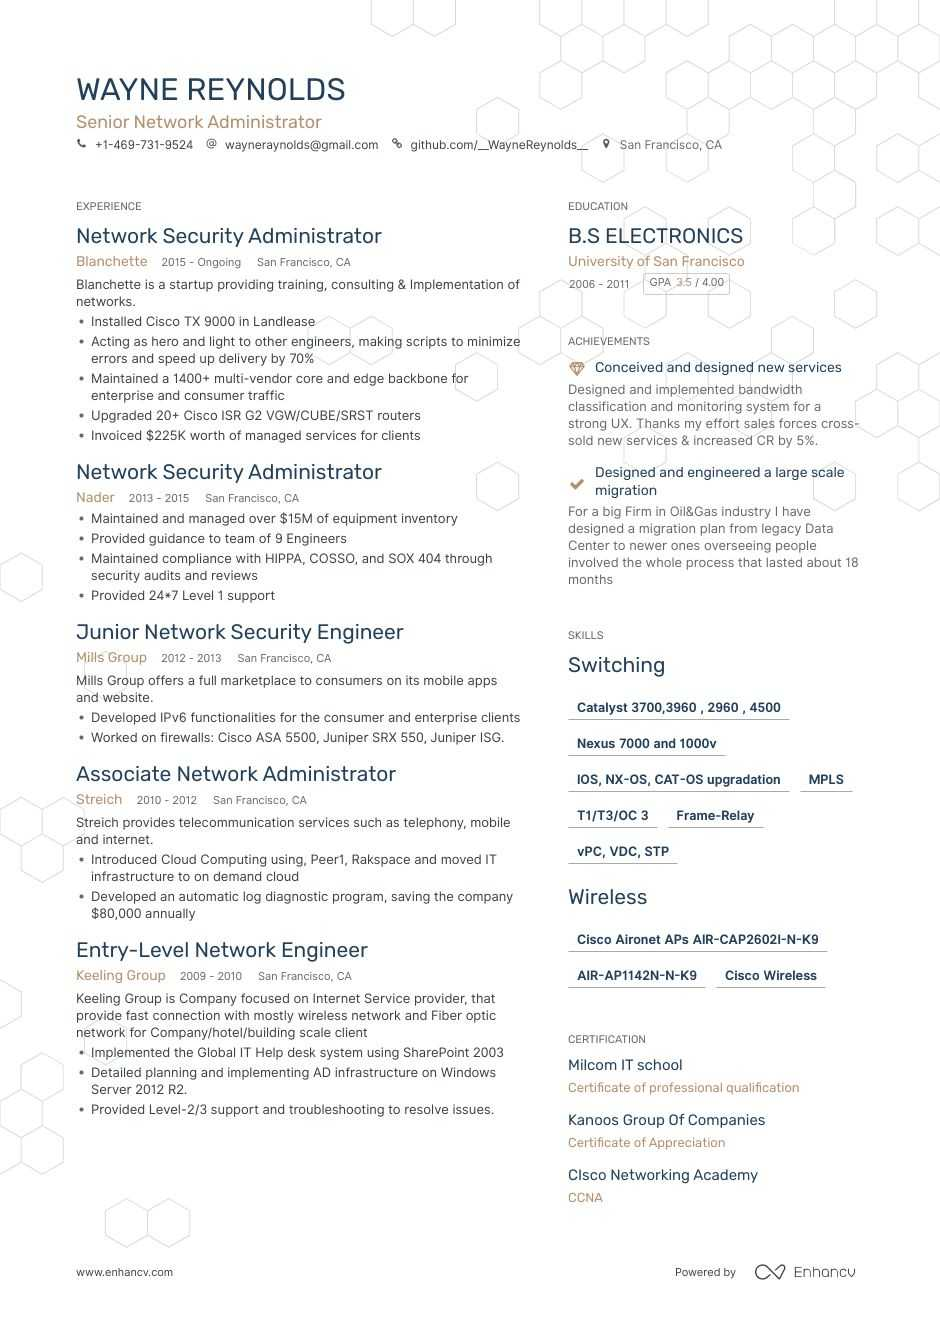 network administrator resume example cisco wireless engineer generated human voiced Resume Cisco Wireless Engineer Resume